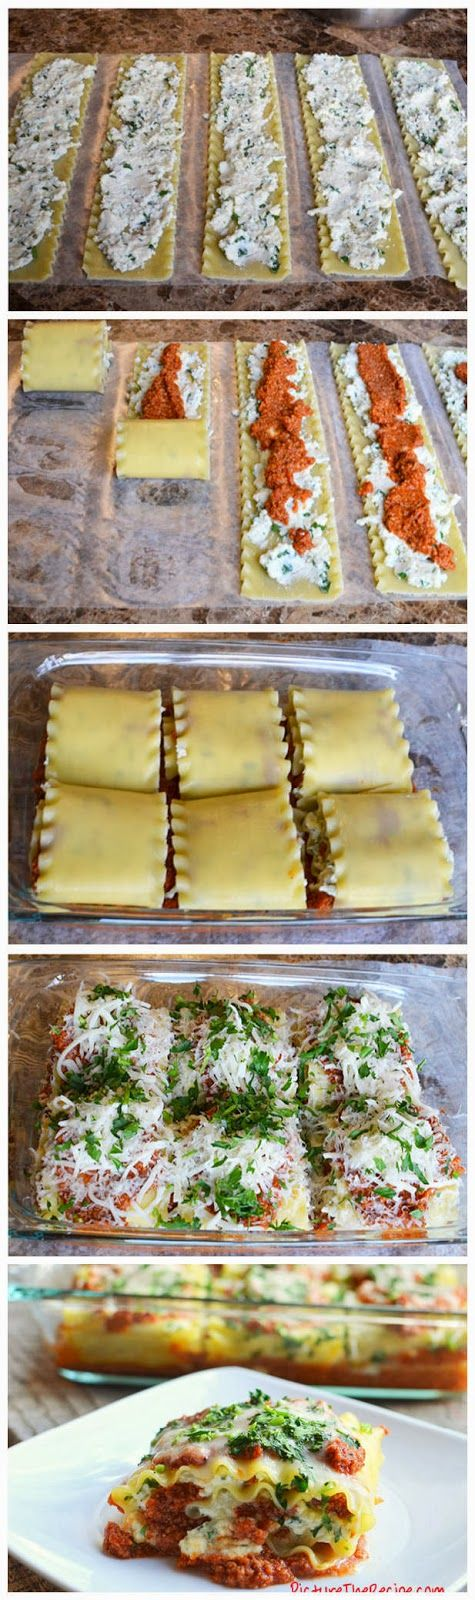 Ingredients: 12 uncooked lasagna sheets 2 Tbsp extra virgin olive oil 1/2 lb ground turkey/ ground beef 1/2 an onion 3-4 cloves of ...